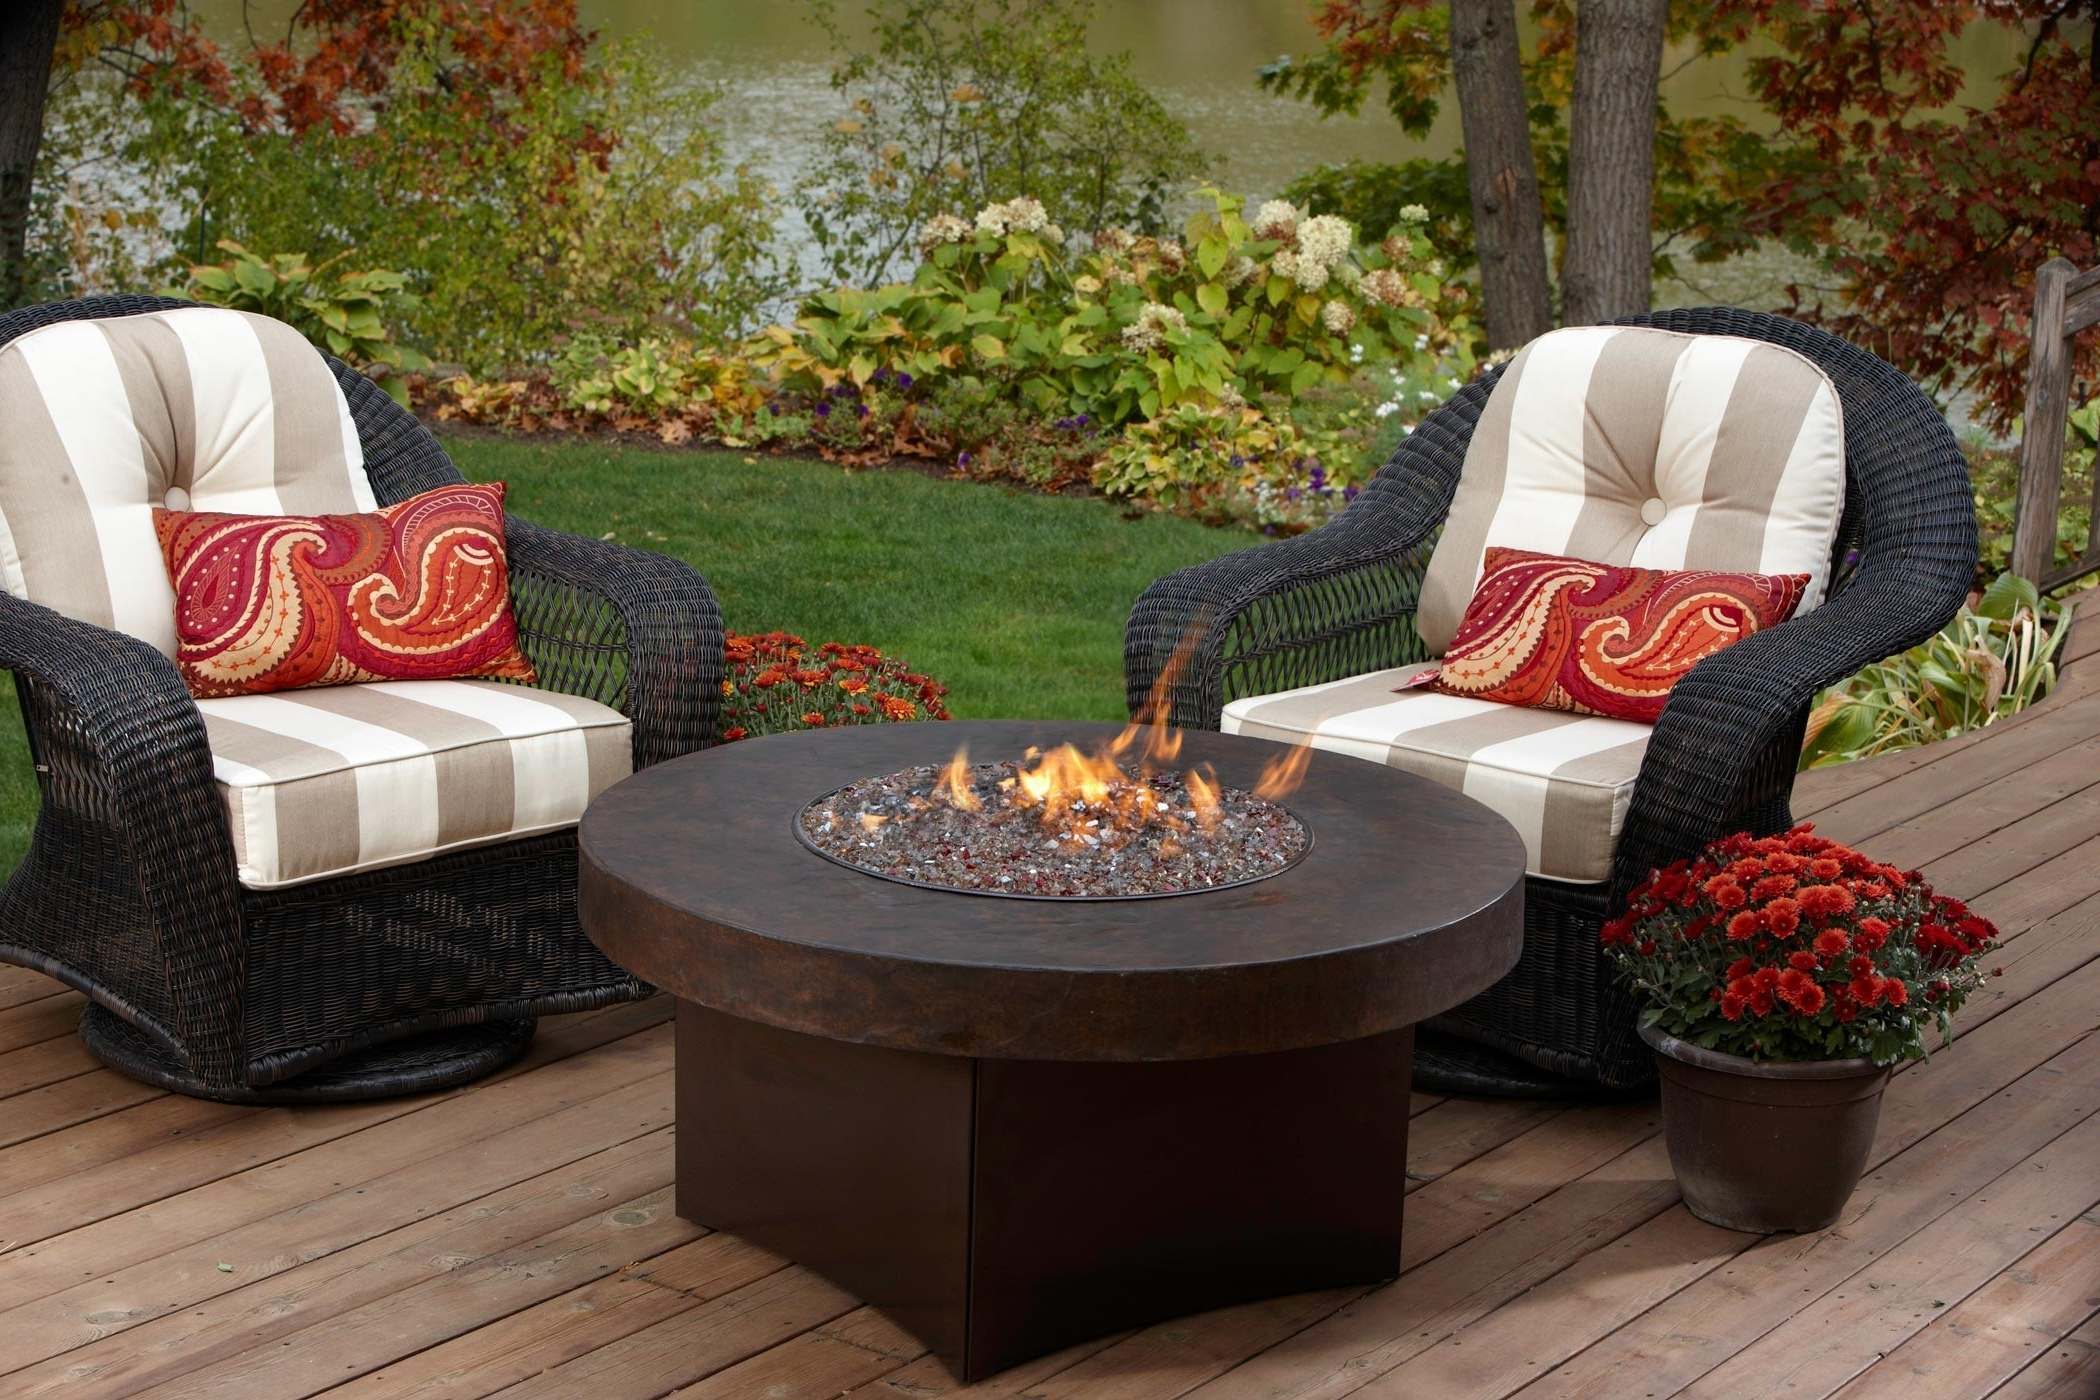 Fundamentals Patio Table With Gas Fire Pit Give The Warmth In Inside Famous Patio Conversation Sets With Propane Fire Pit (View 2 of 15)